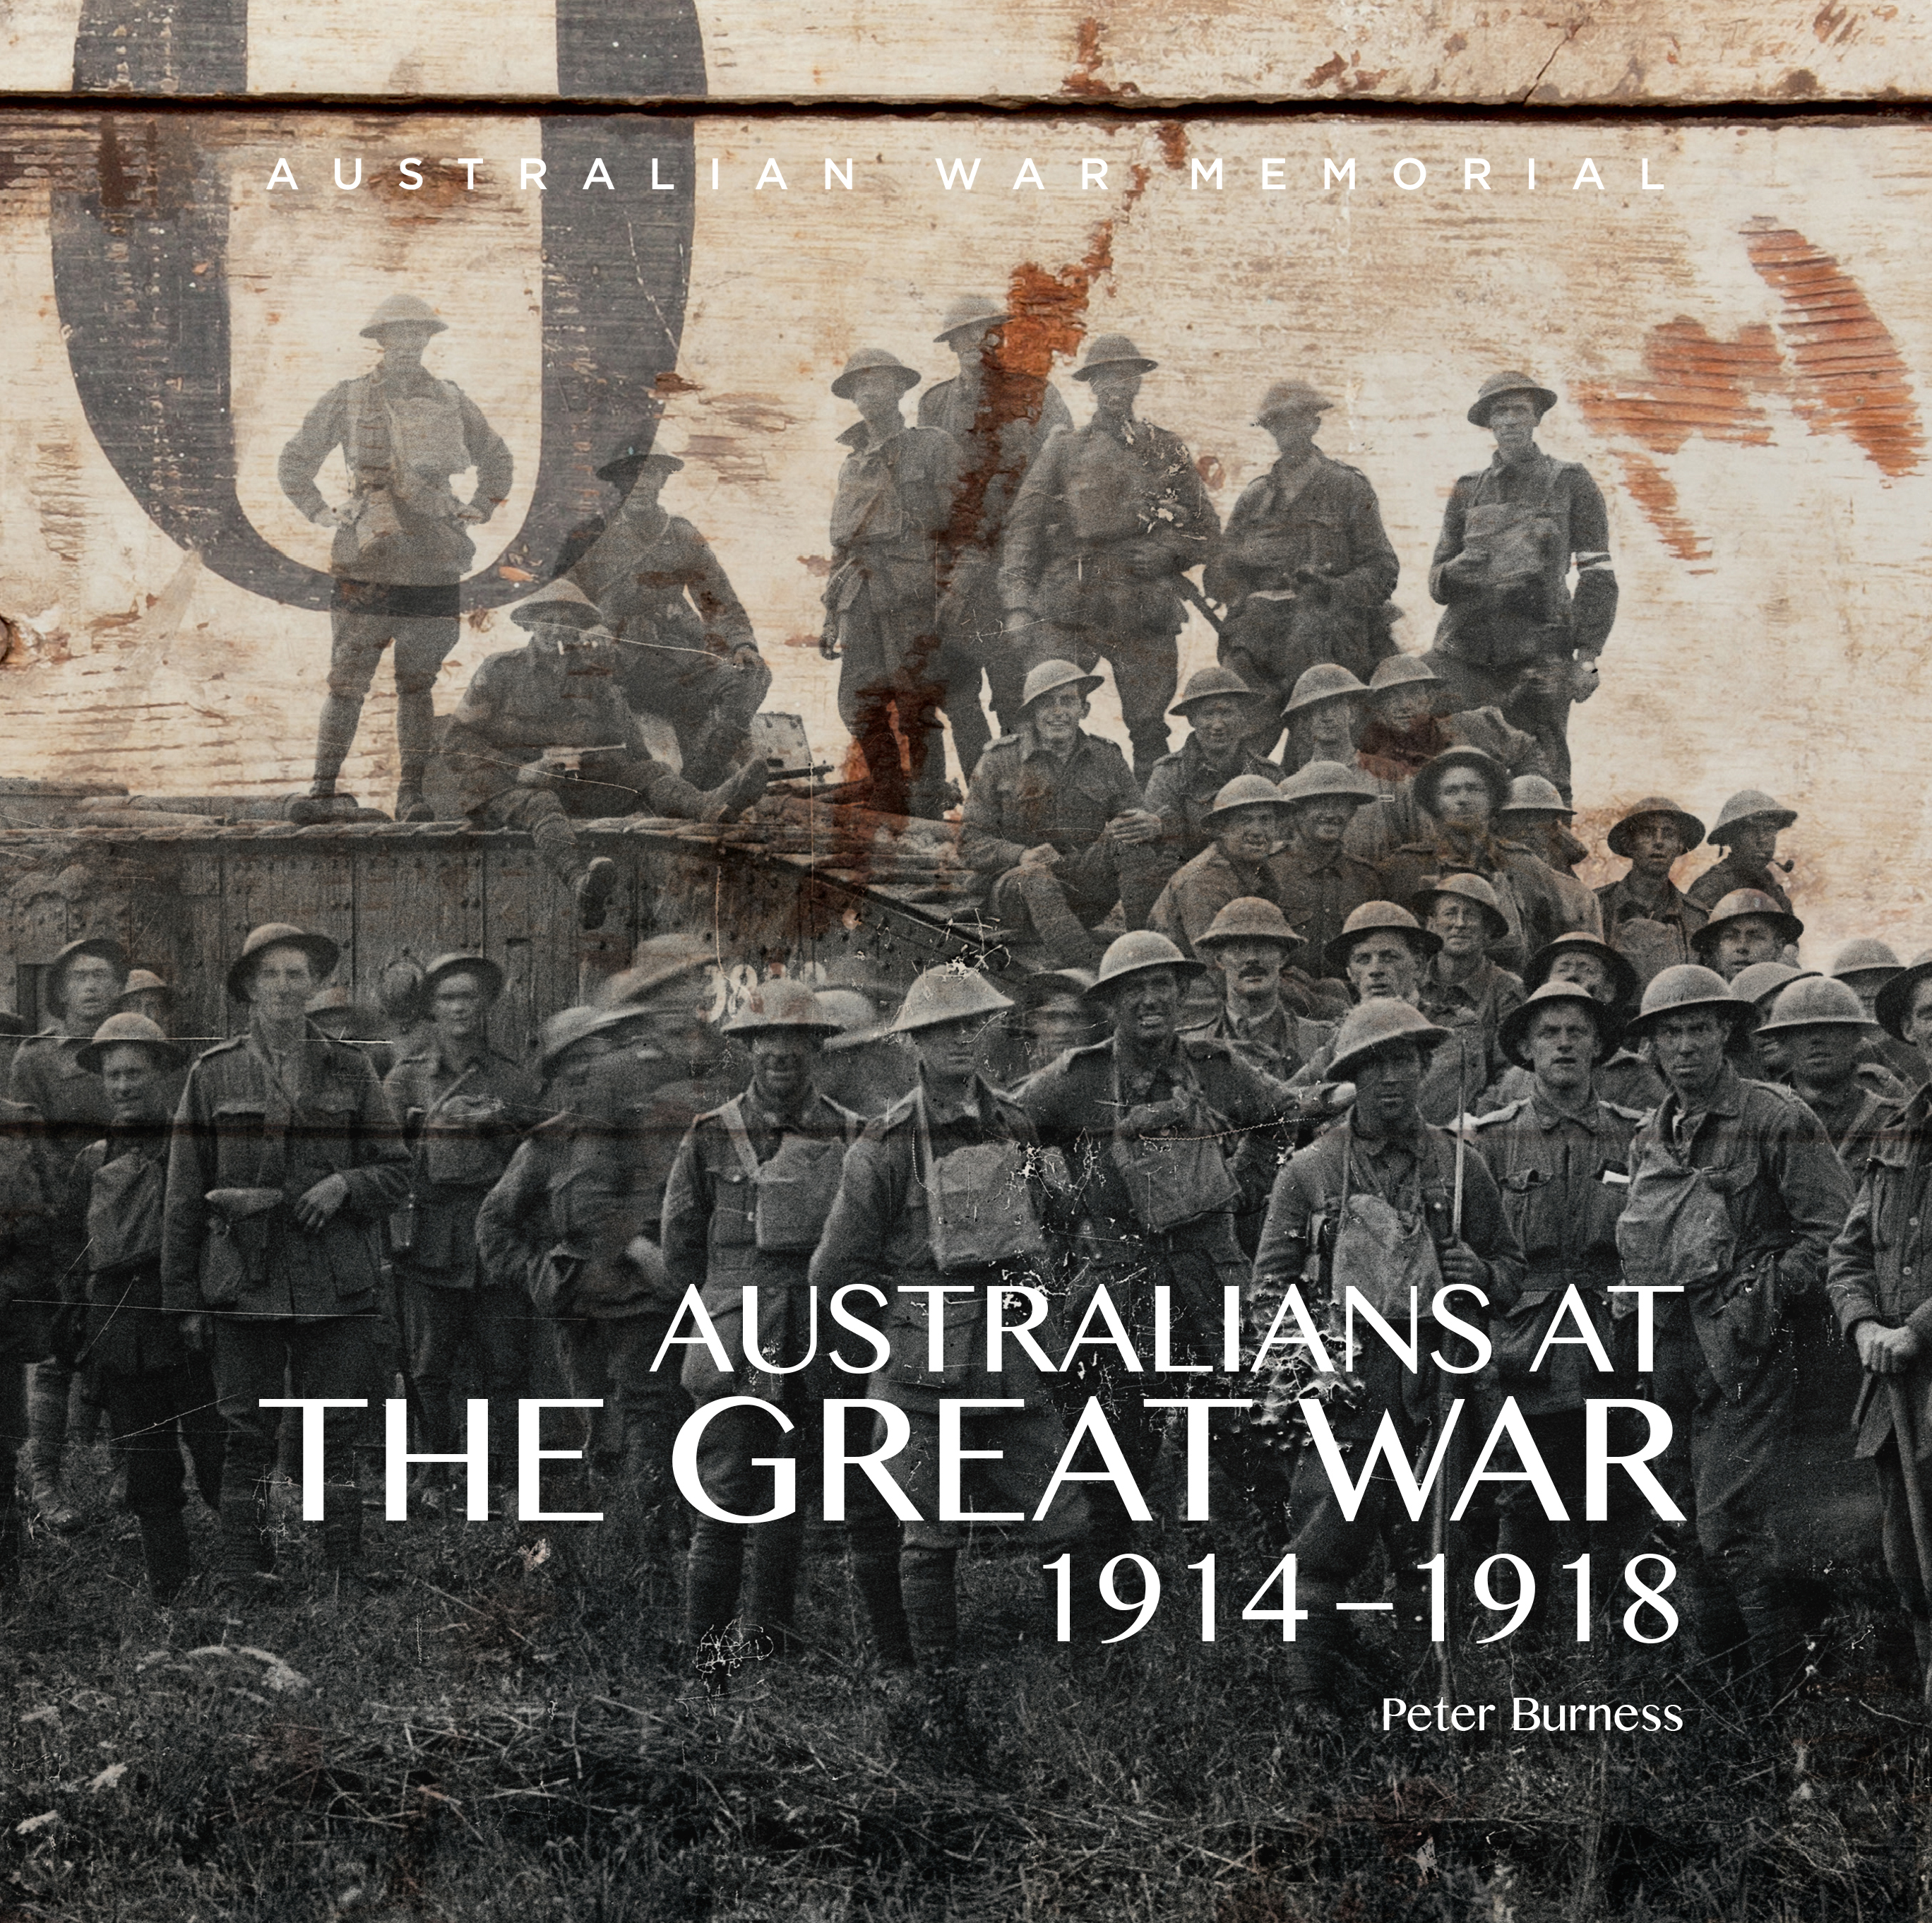 an introduction to the history of the anzac legend gallipoli Our history history in focus wwi gallipoli our history  the ship was part of the fleet which transported australian troops to the gallipoli landing at anzac.